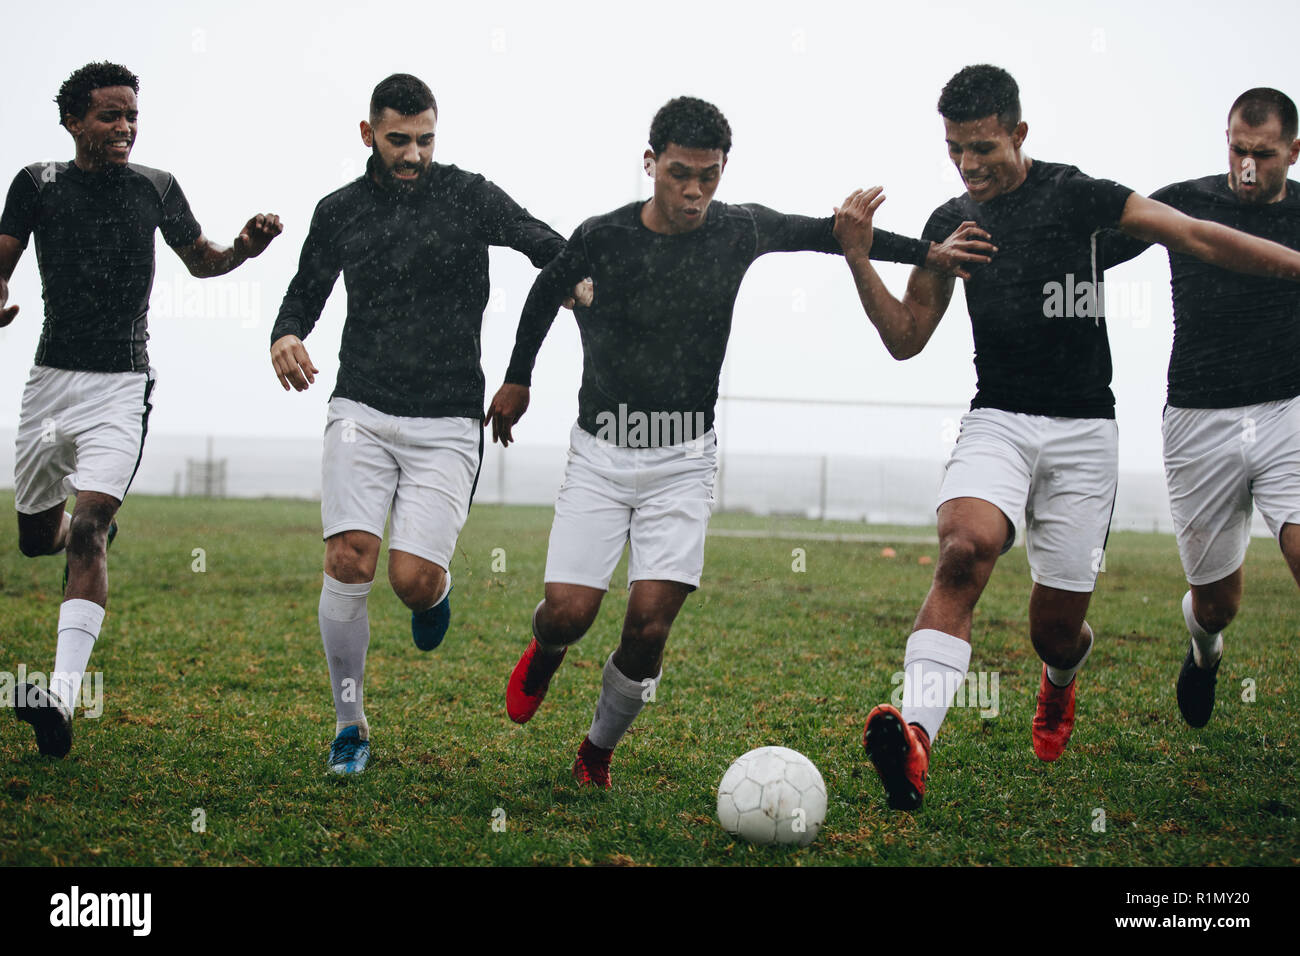 Men playing soccer running after a football on a rainy morning. Footballers trying to take possession of the ball running on the field playing soccer. - Stock Image